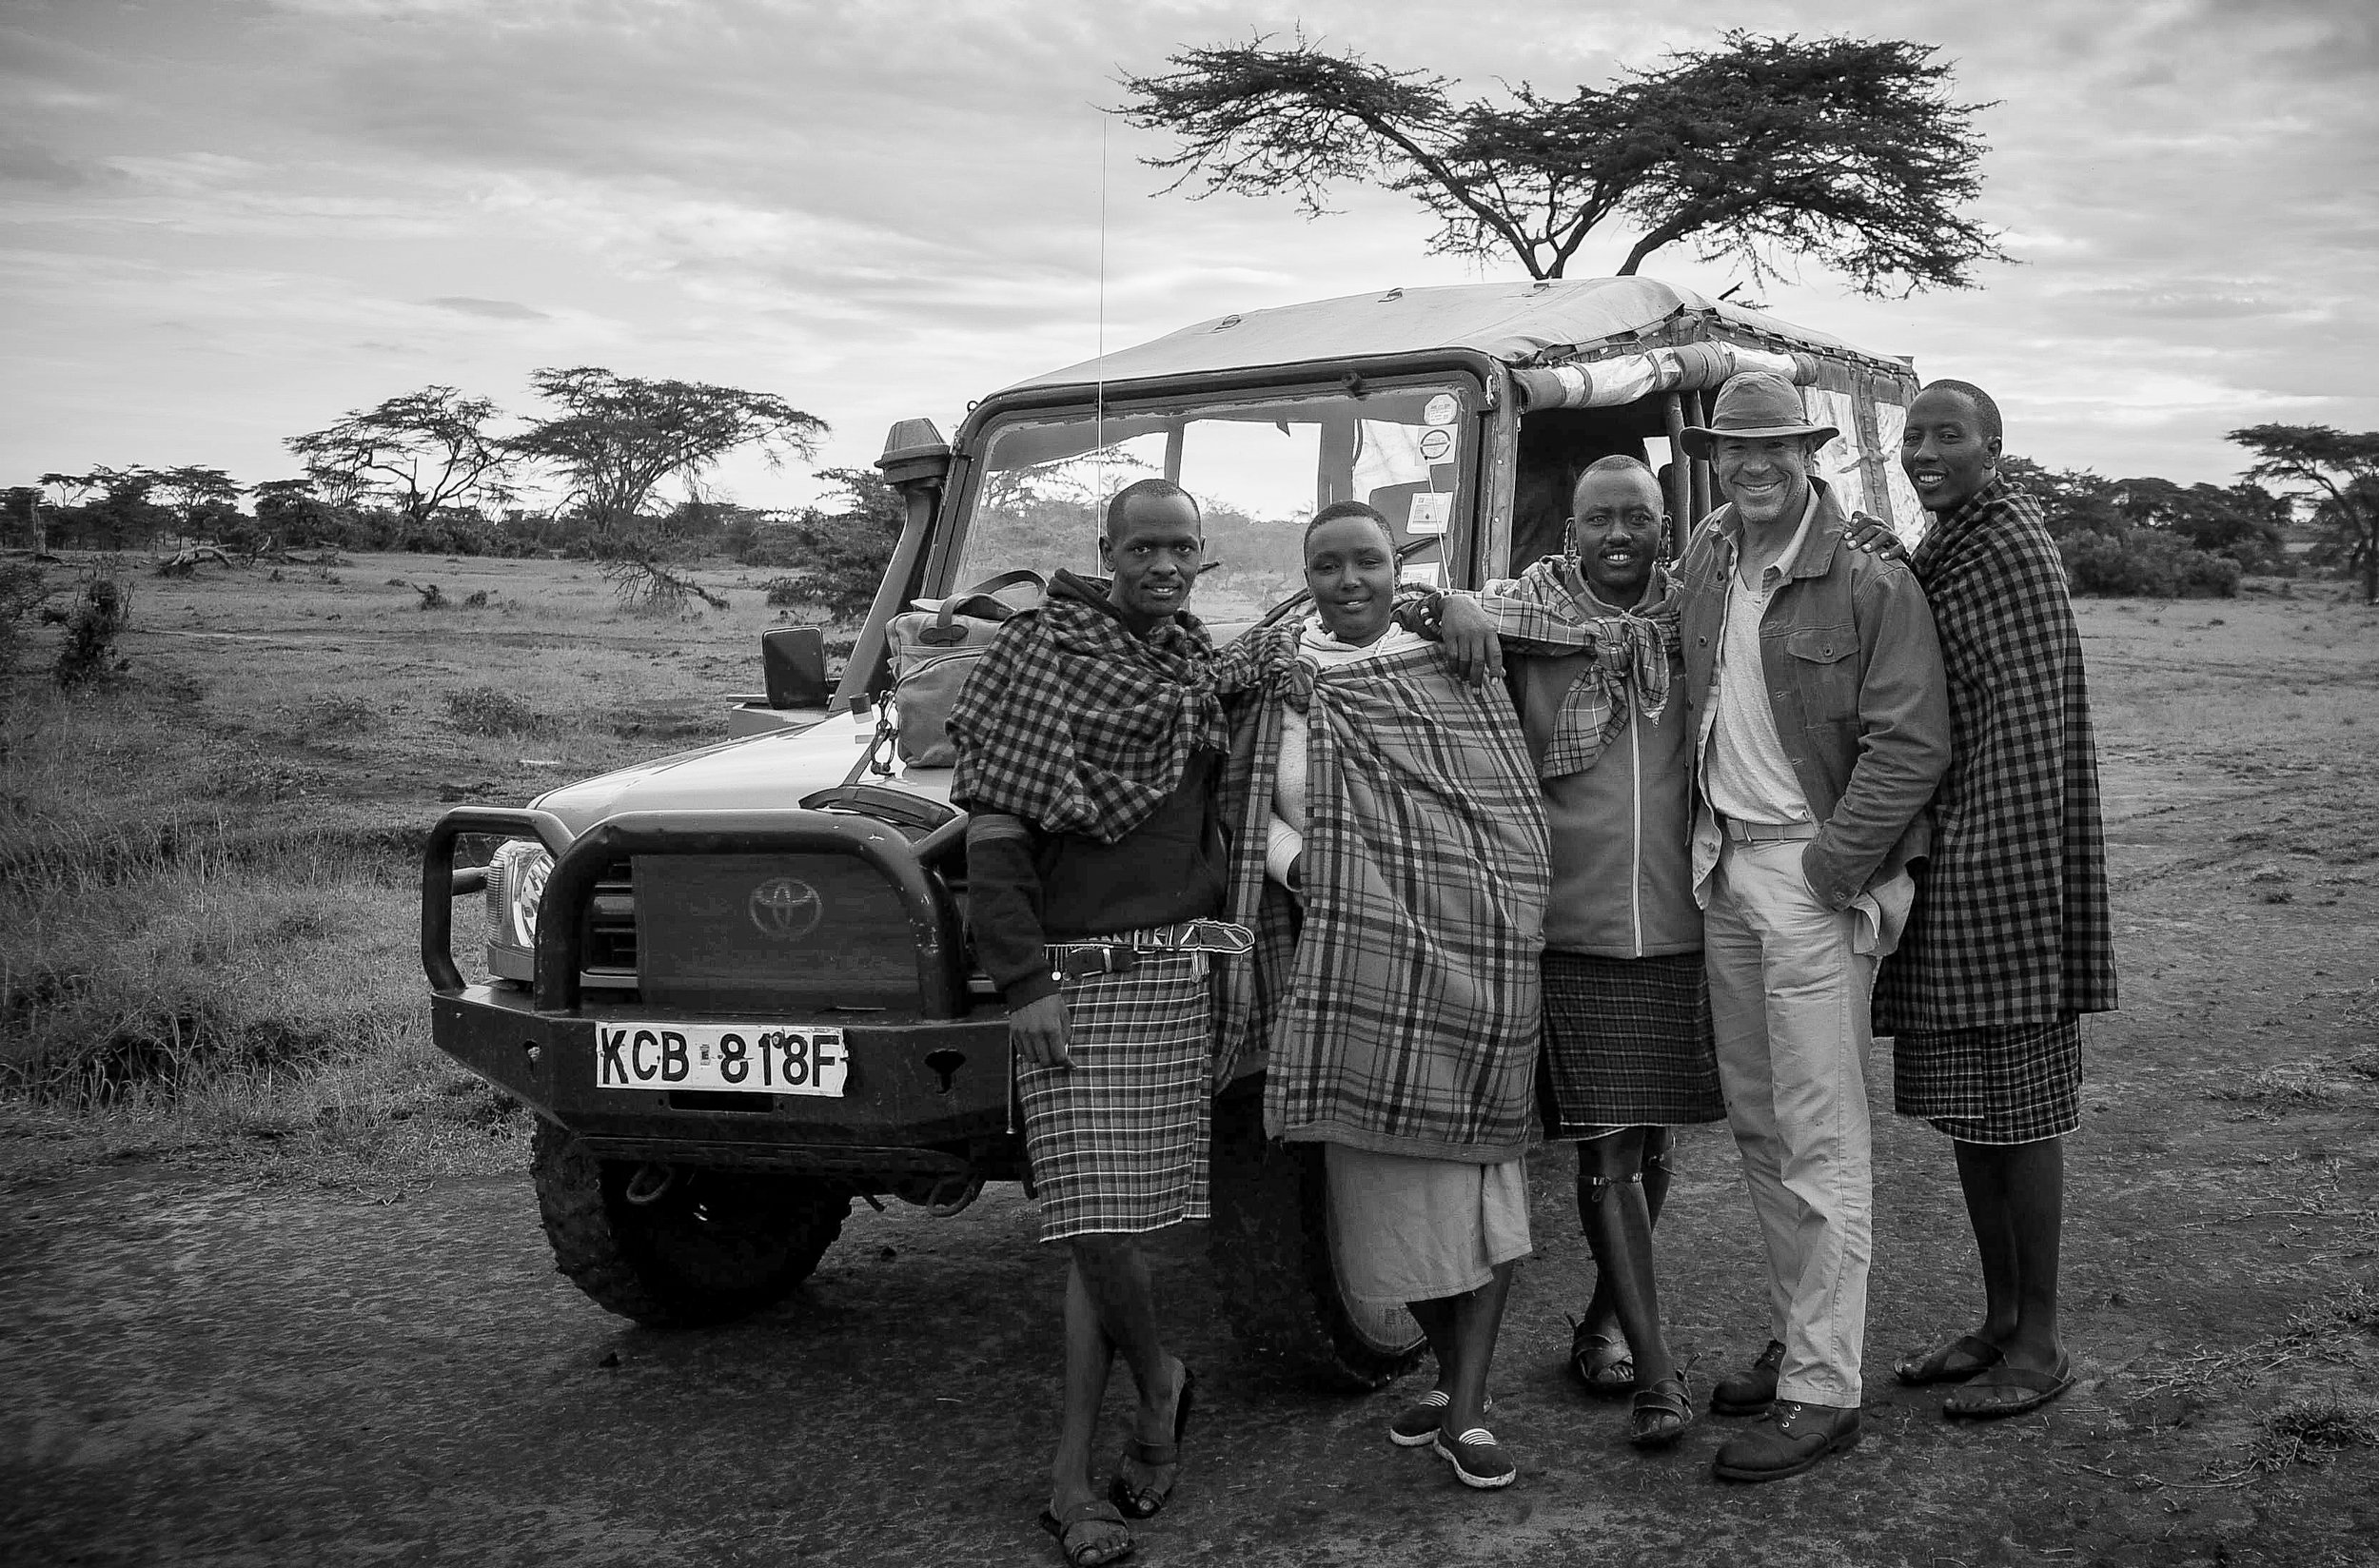 Lessons from Africa - I had a chance to live and partner with the Masai this year and the lessons I learned were not only transformational but also transferable. Let's turn our teams into tribes.